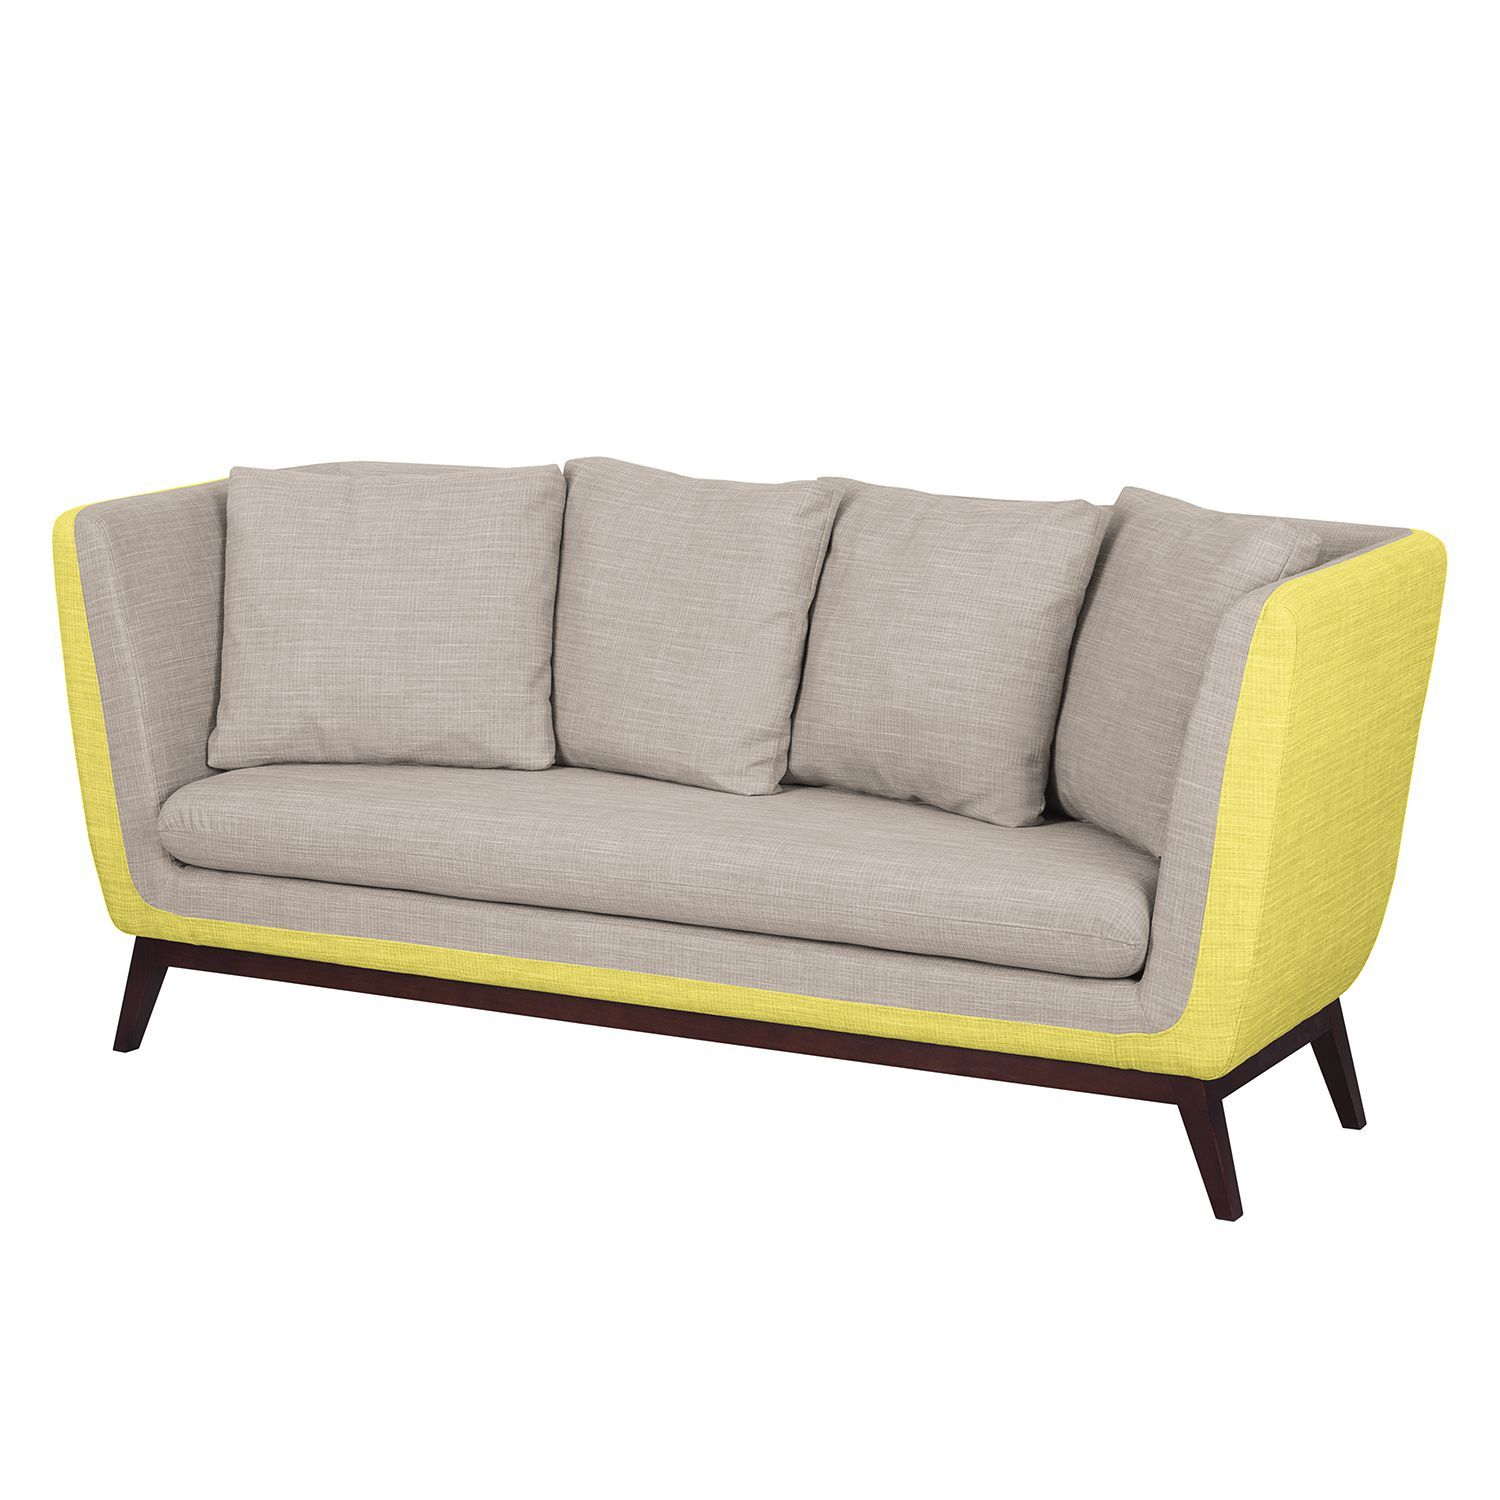 Ecksofa Fireside Pin By Ladendirekt On Sofas Couches Sofa Couch Furniture